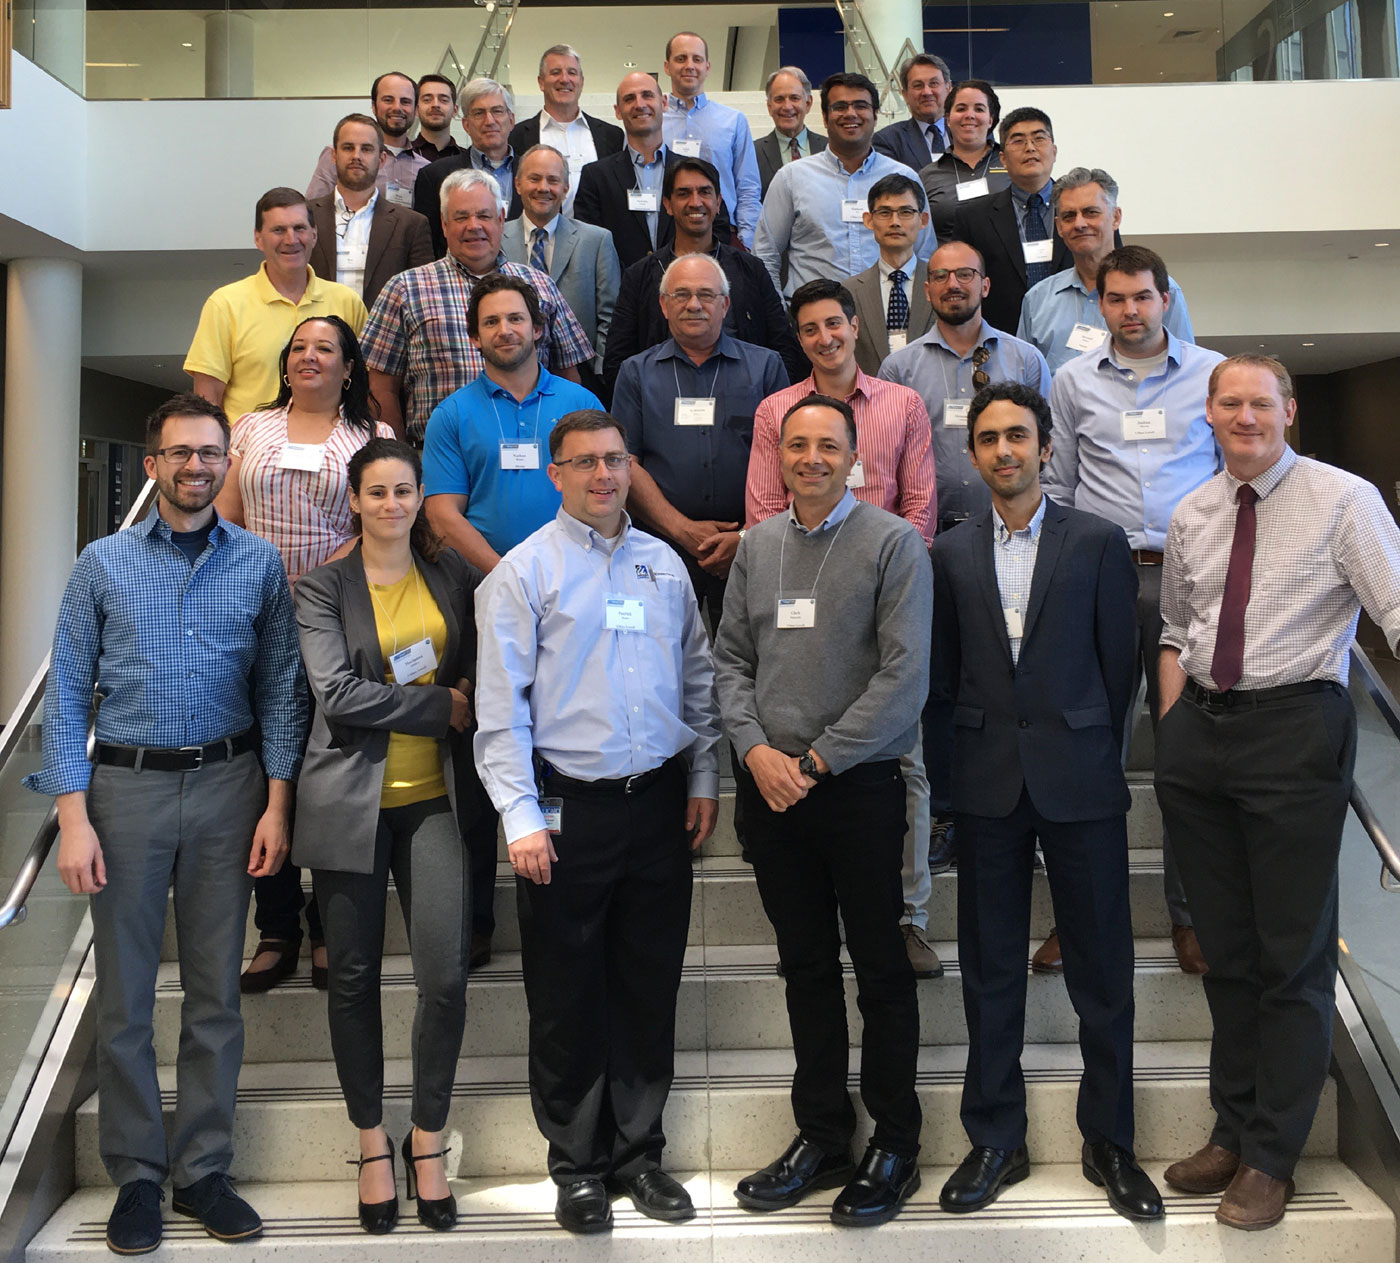 WindSTAR Researchers pose for a group picture at an annual meeting.